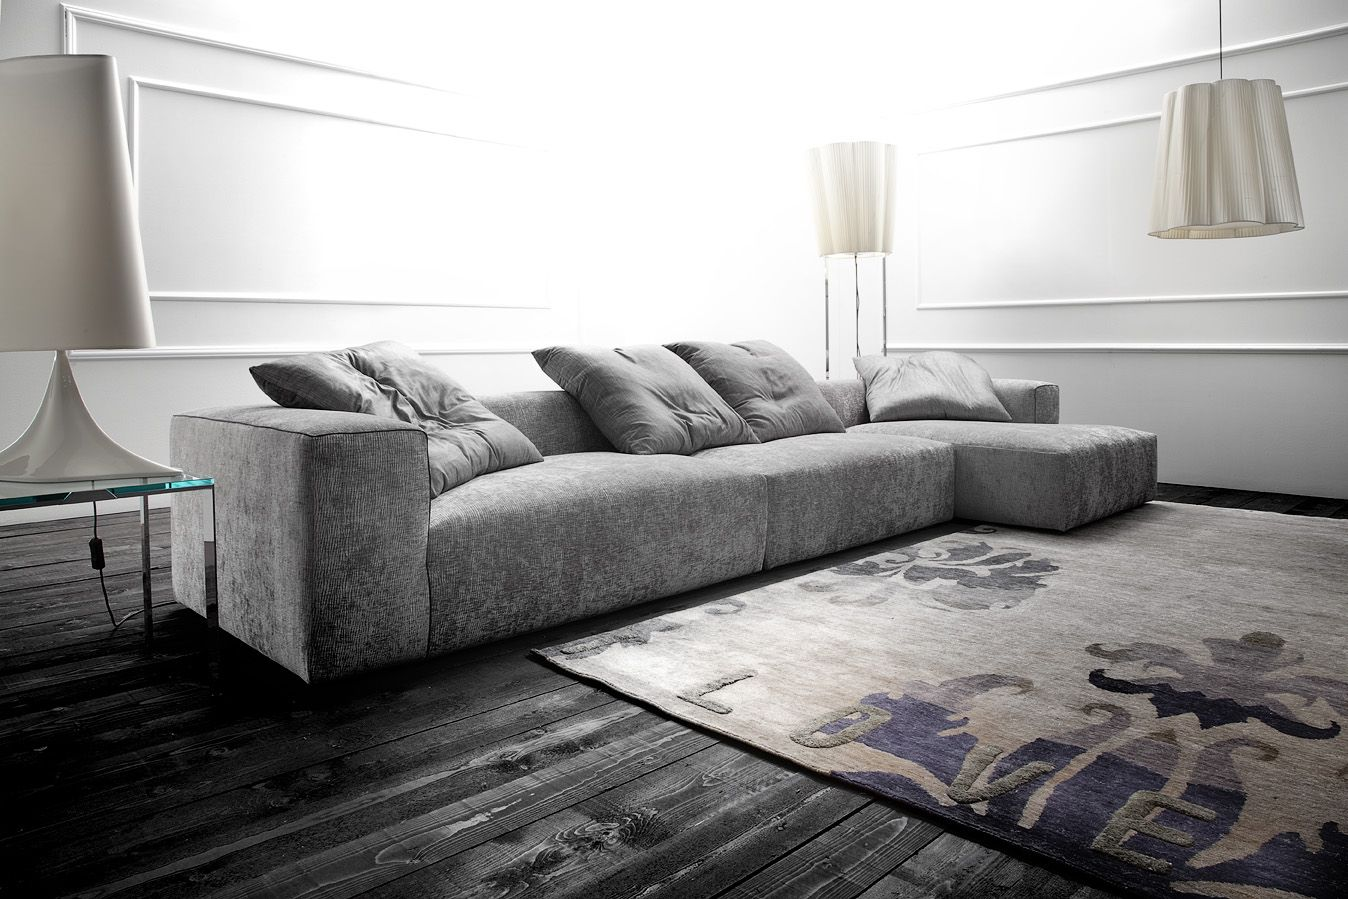 Dylan 02 Sofa or Sectional, Contemporary Living Room Design at Cassoni.com